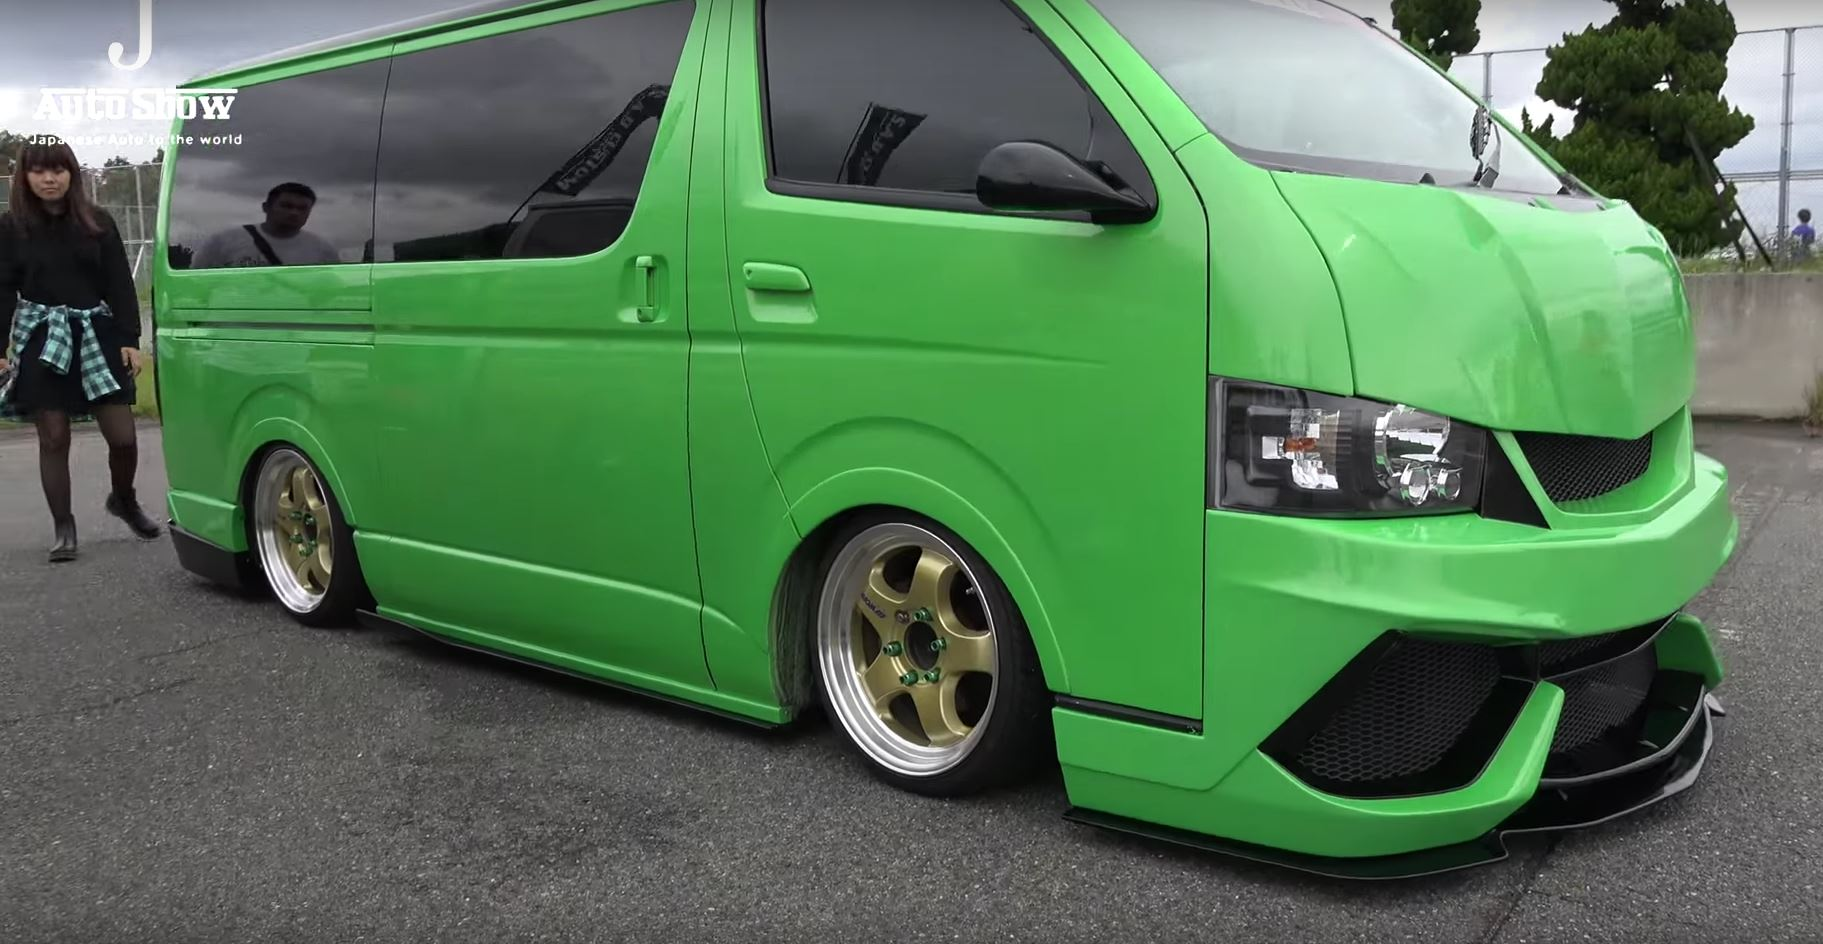 Two Toyota Hiace Vans Get Lamborghini Bumpers and Paint ...